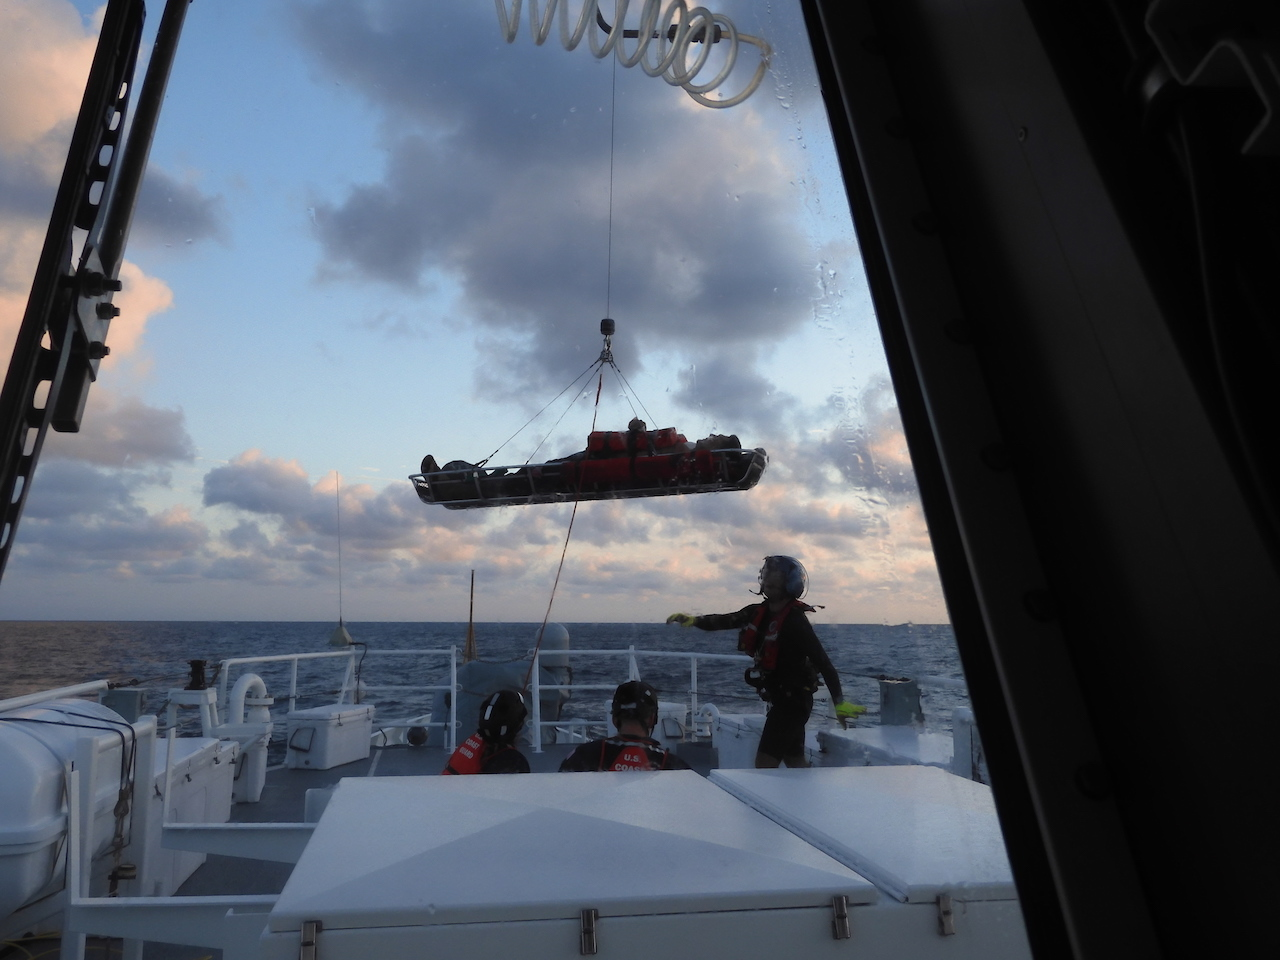 Coast Guard medevacs vessel operator after boat collision 35 miles northwest of Dry Tortugas